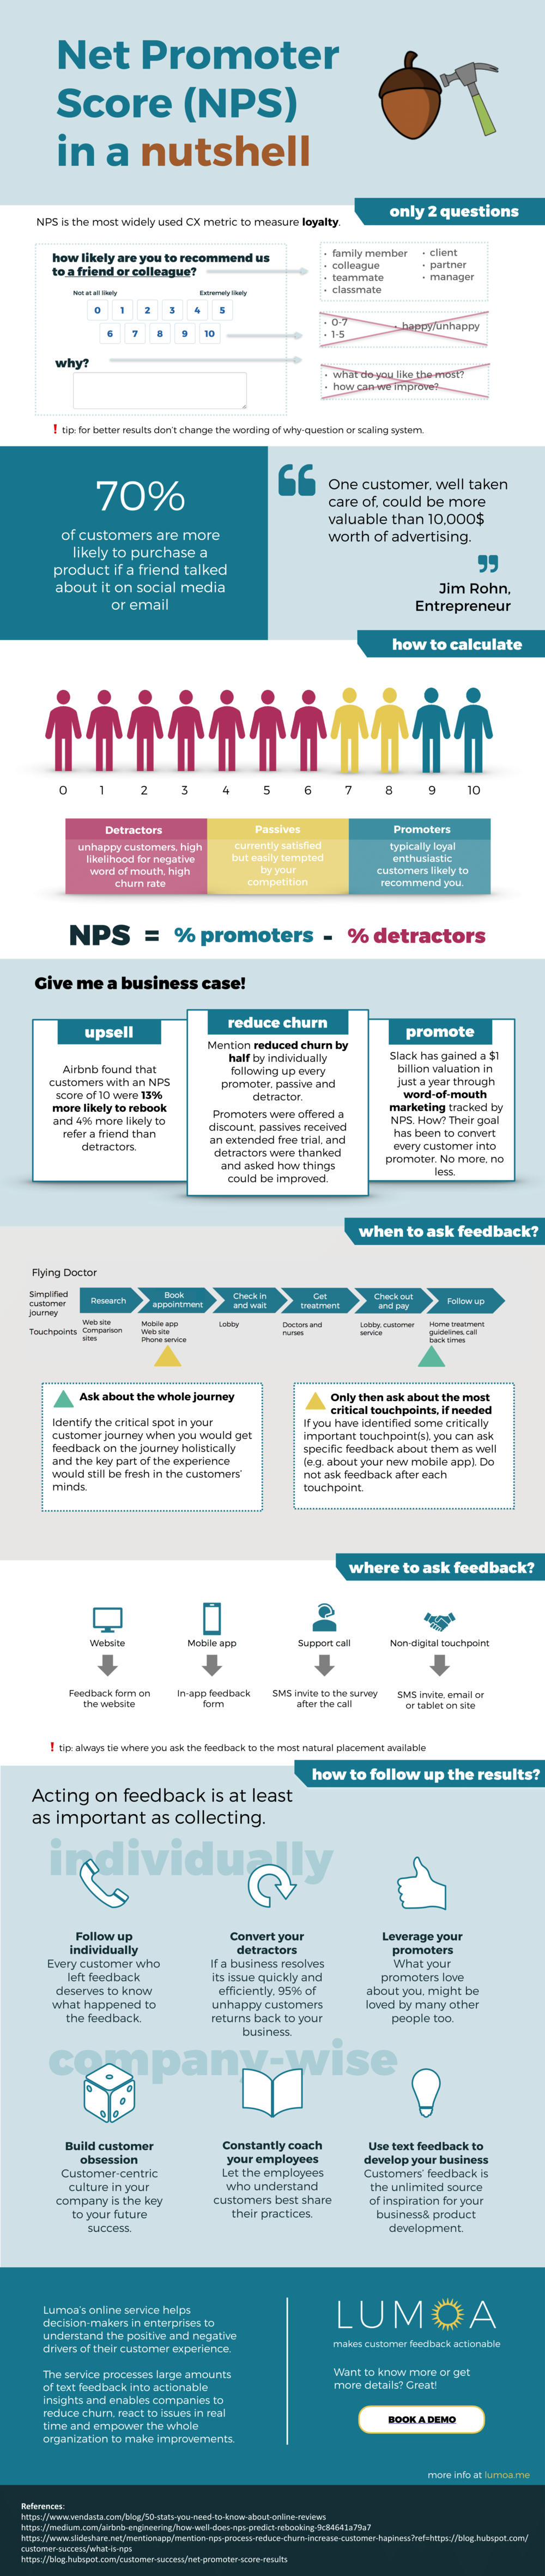 Net Promoter Score Definition [Infographic]